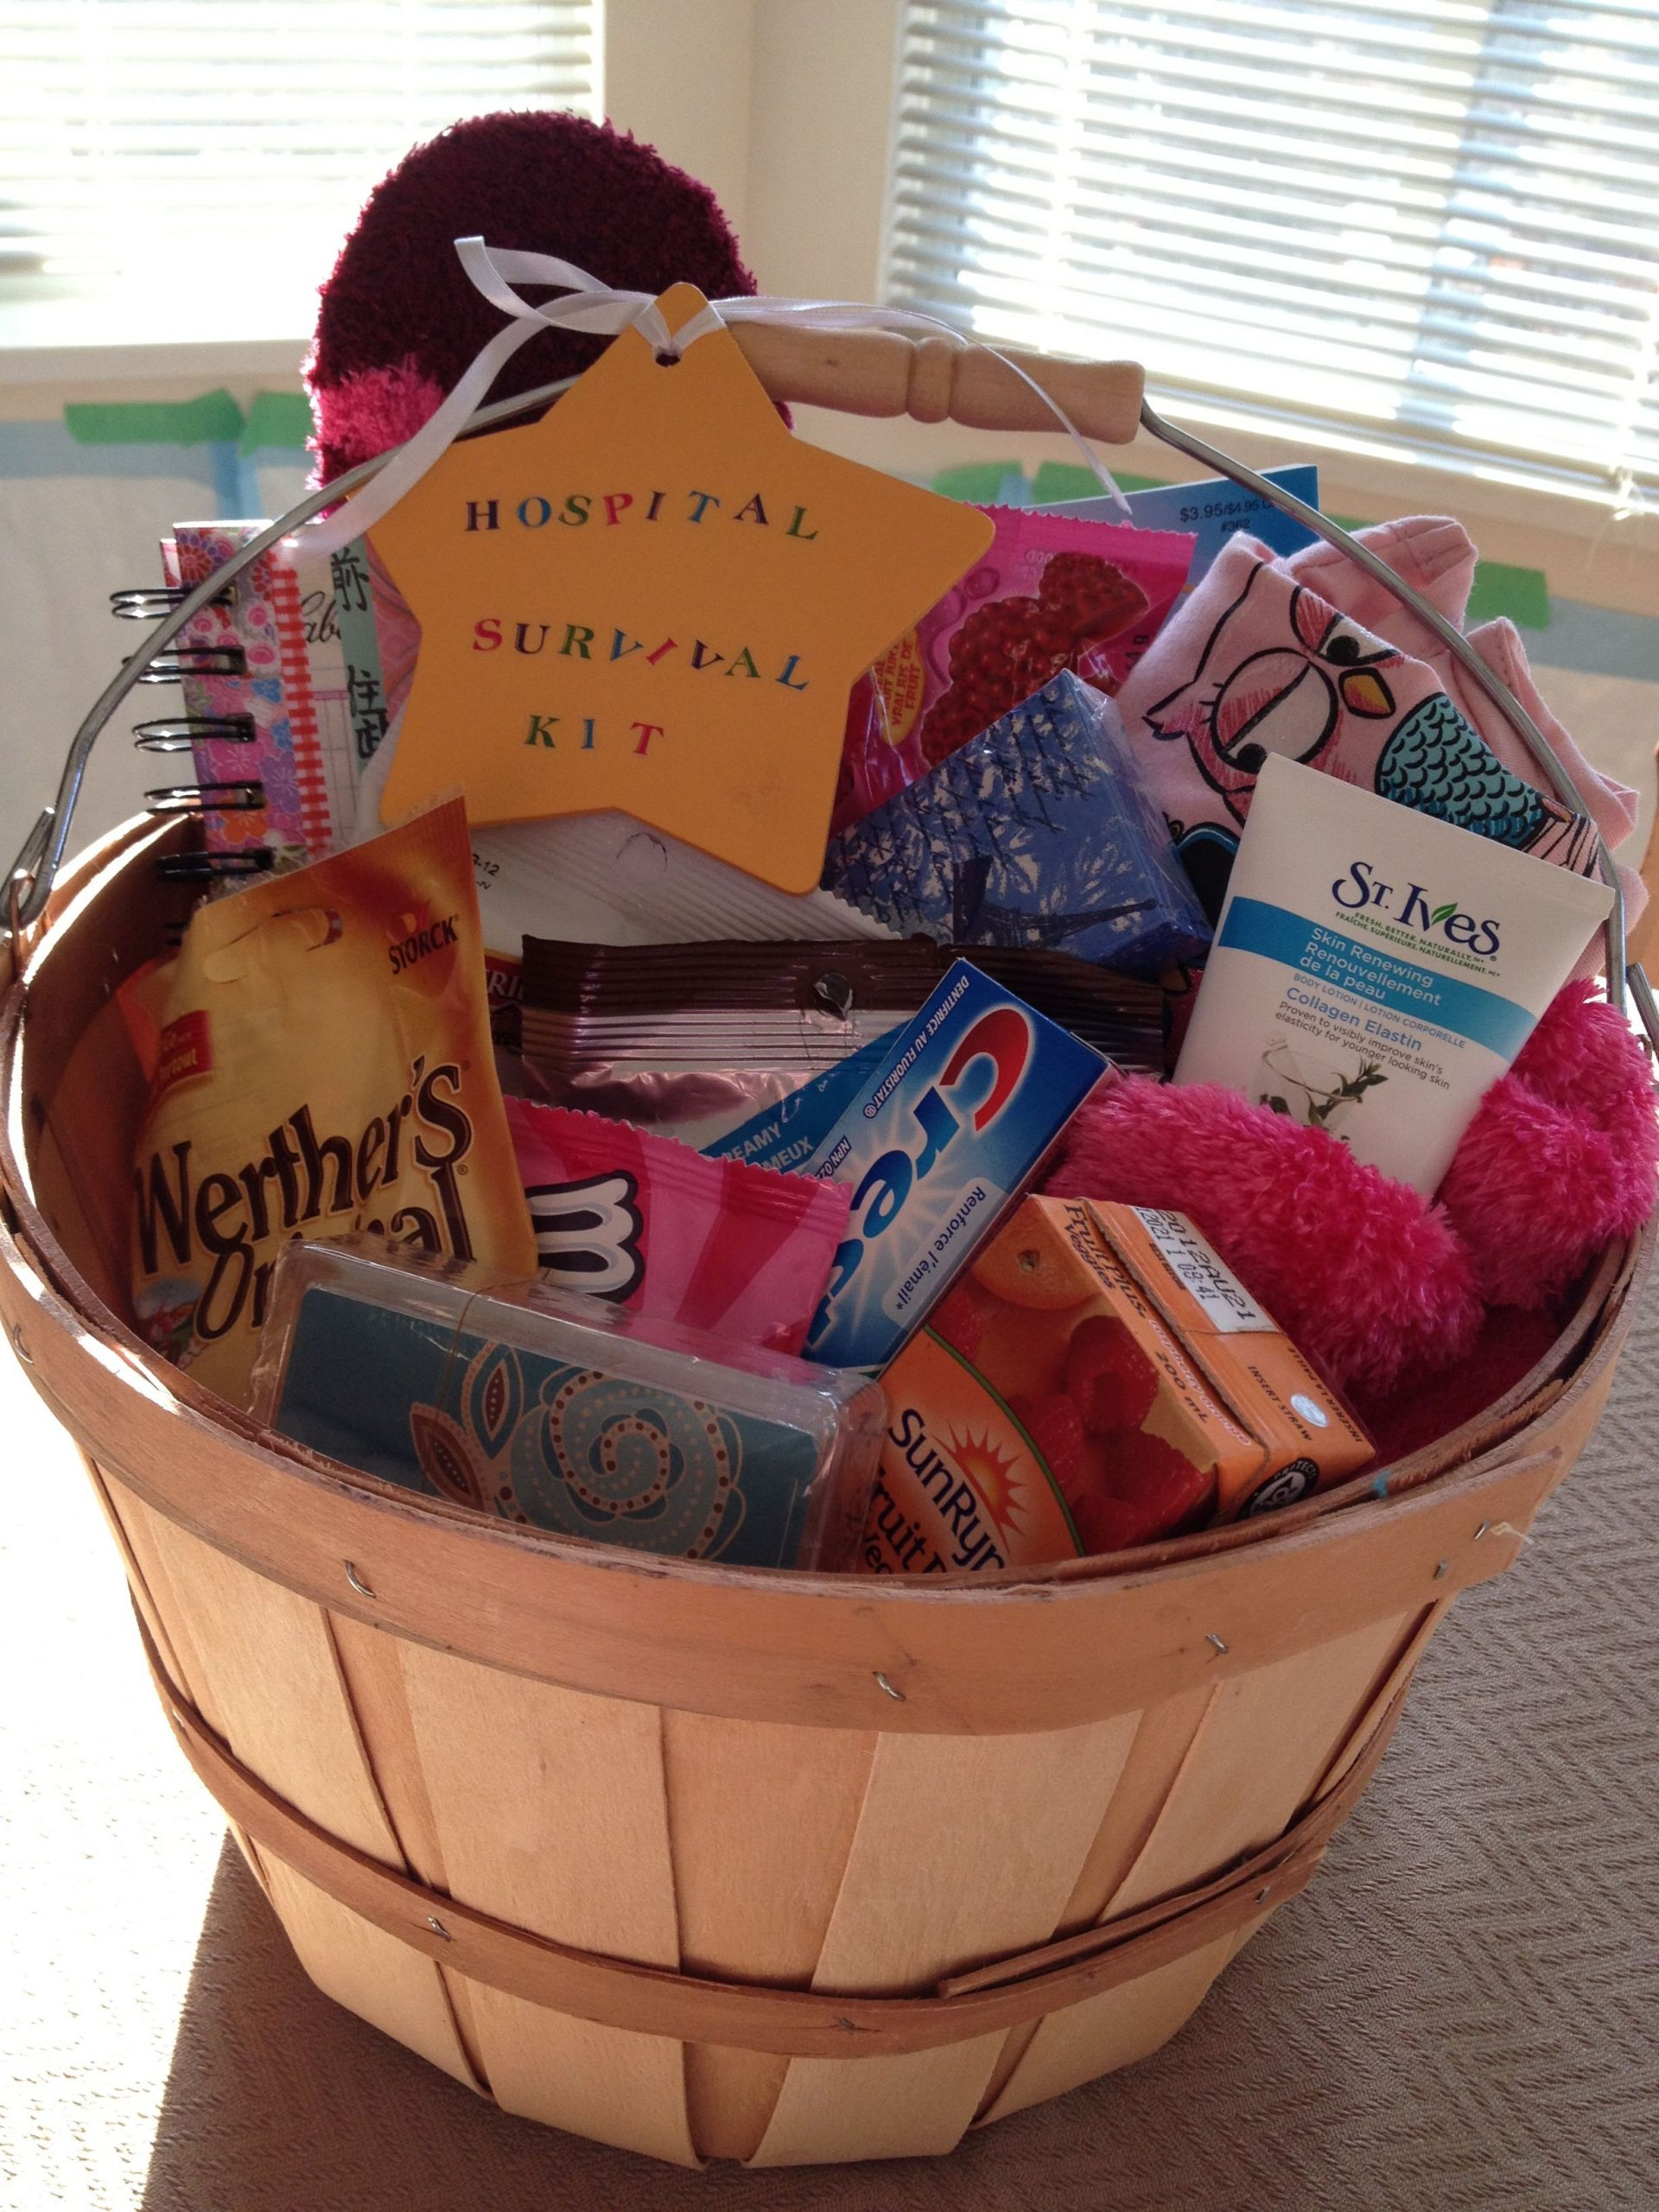 Gift Basket For Child In Hospital  Hospital Survival Kit